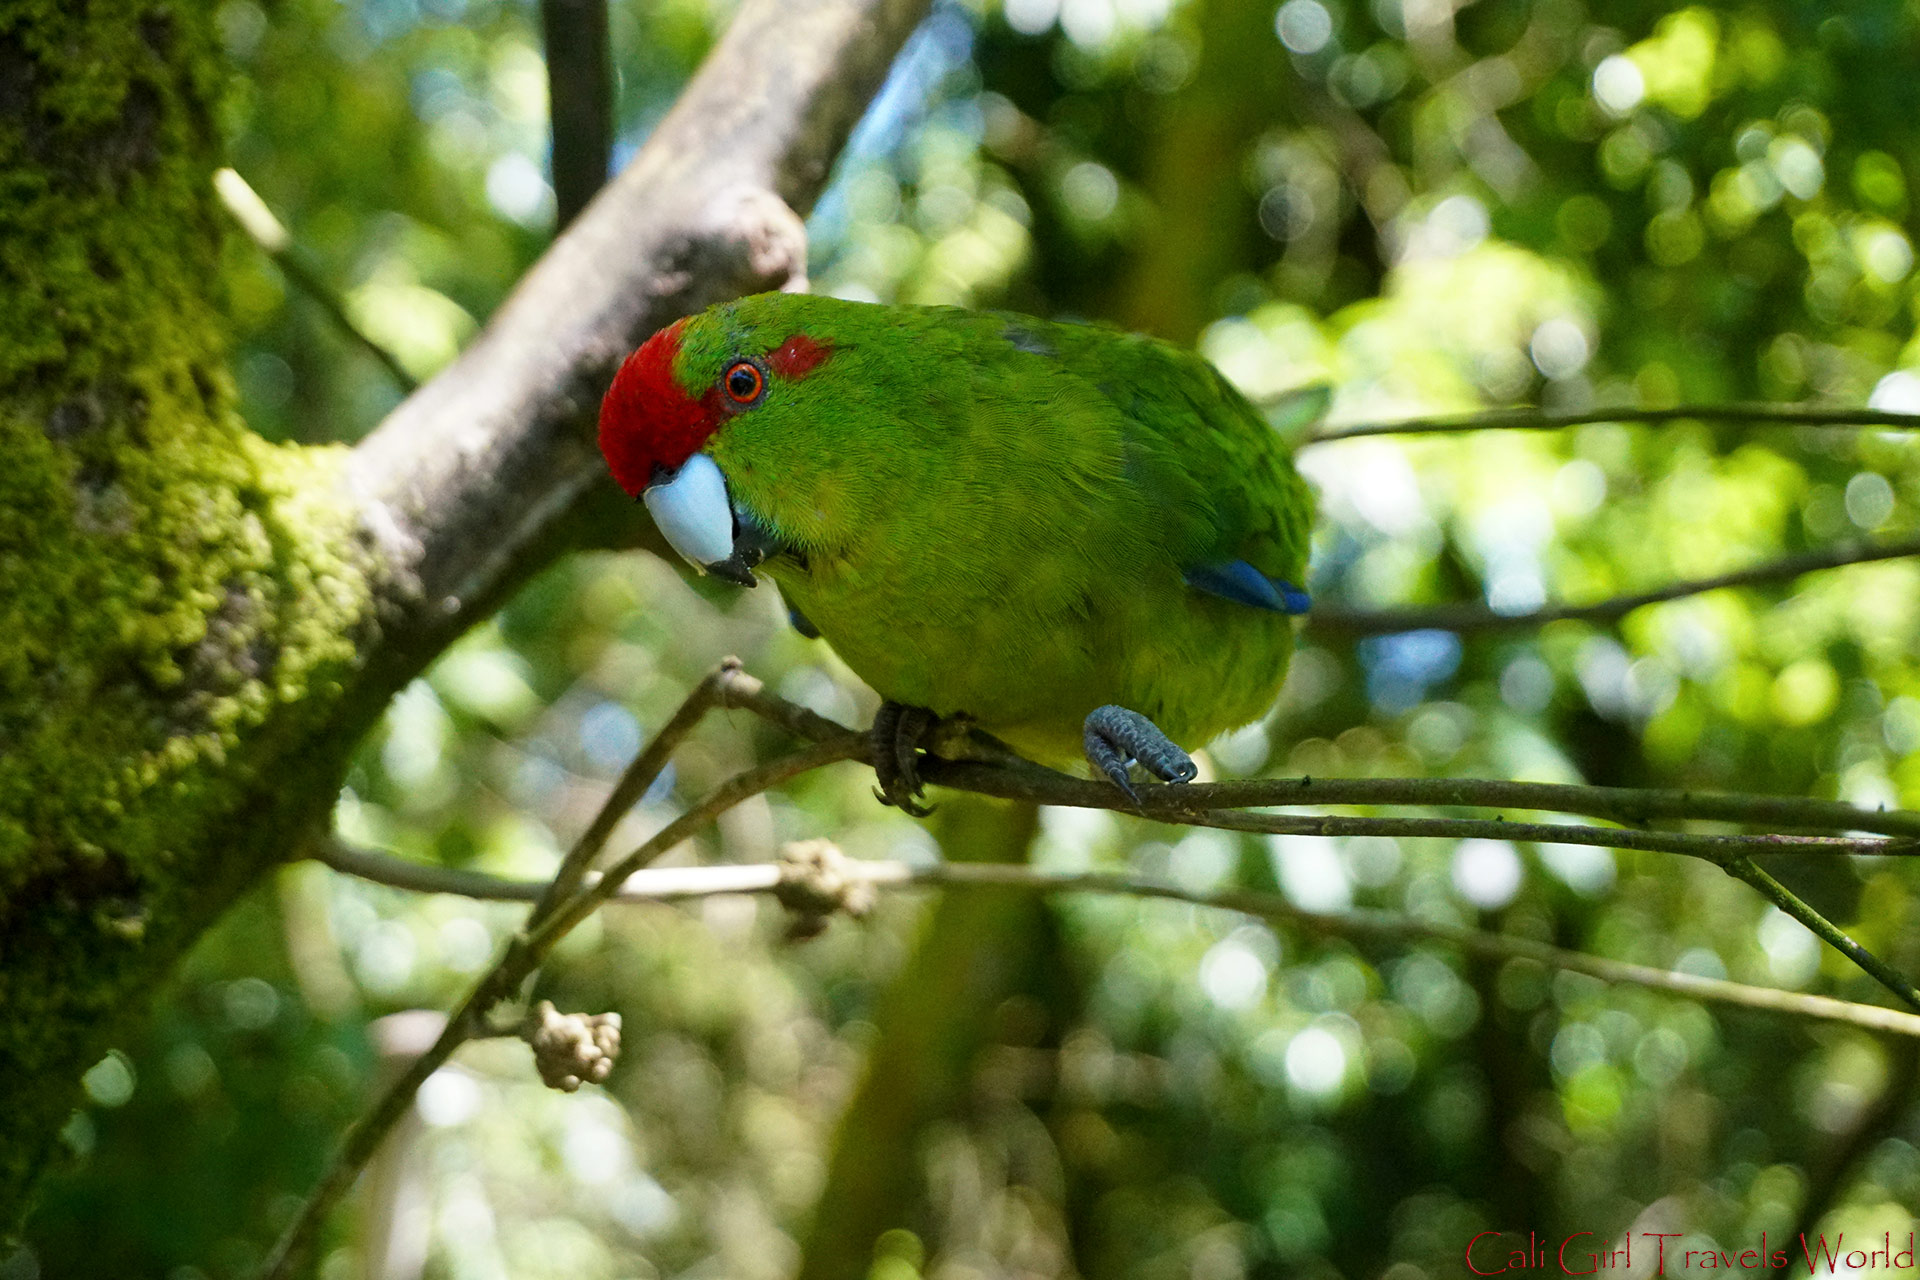 A wild native Kakariki bird of New Zealand on Tiritiri Matangi Island, near Auckland.